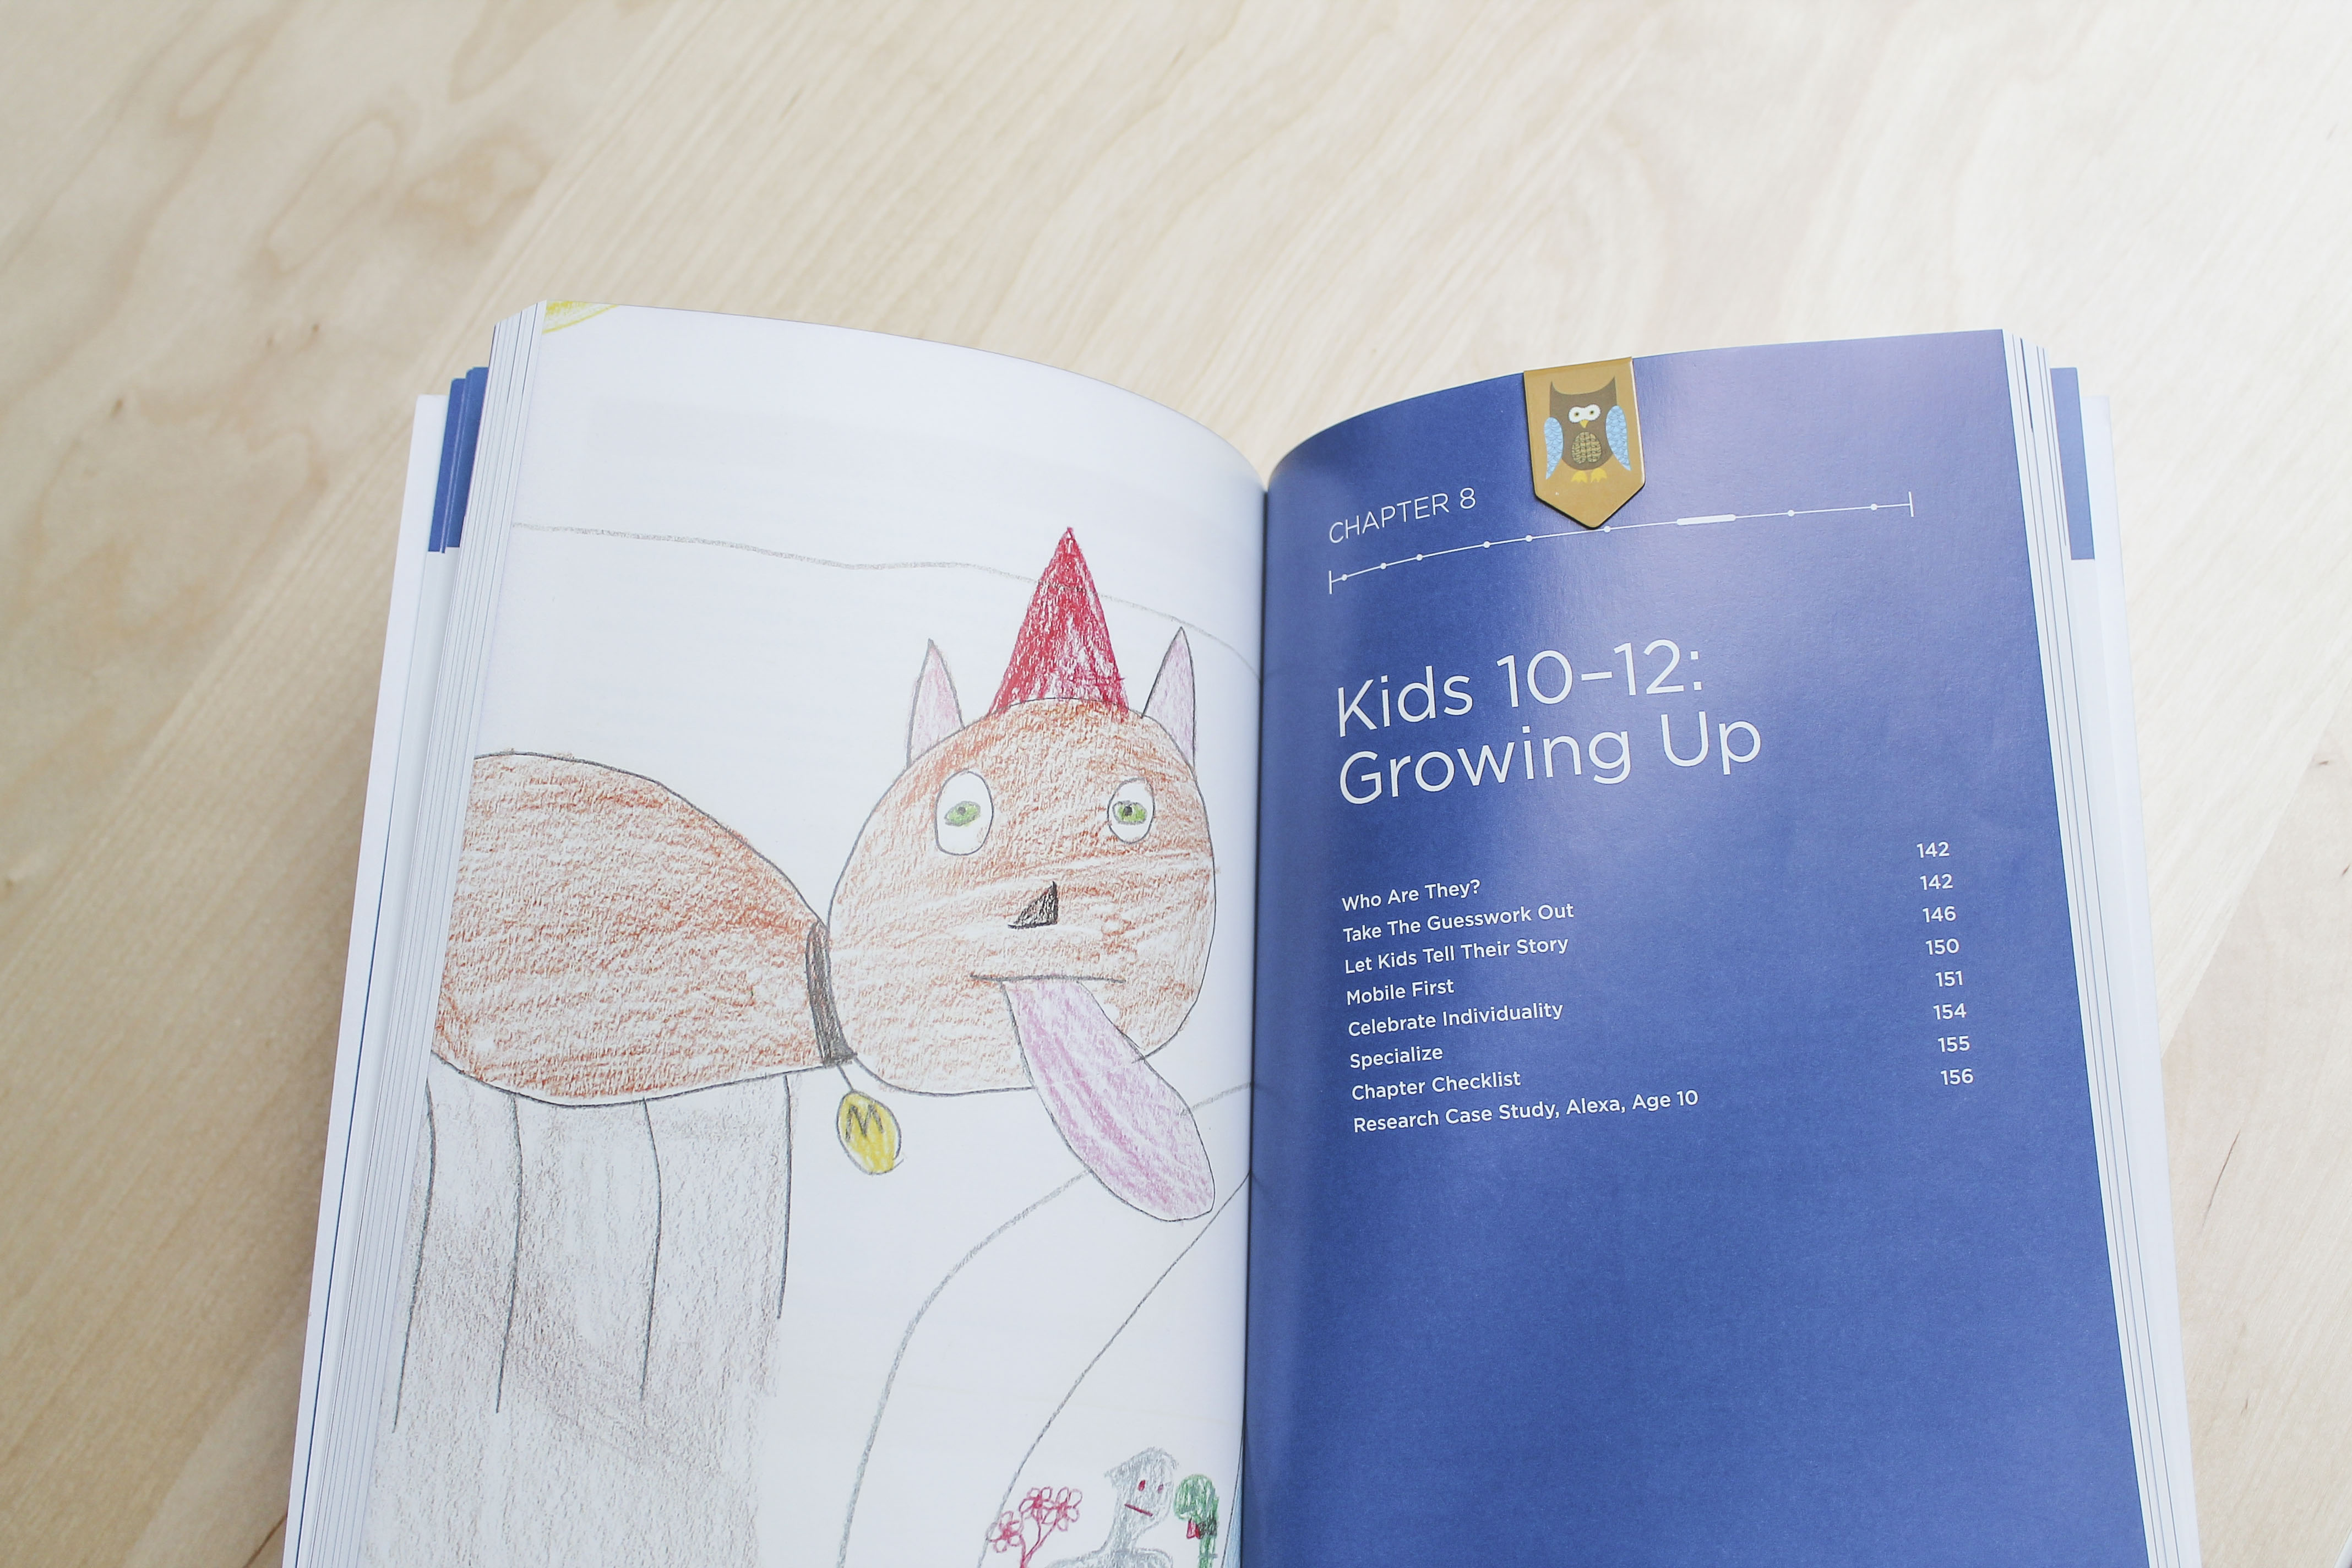 Picture of interior picture of Design for Kids book